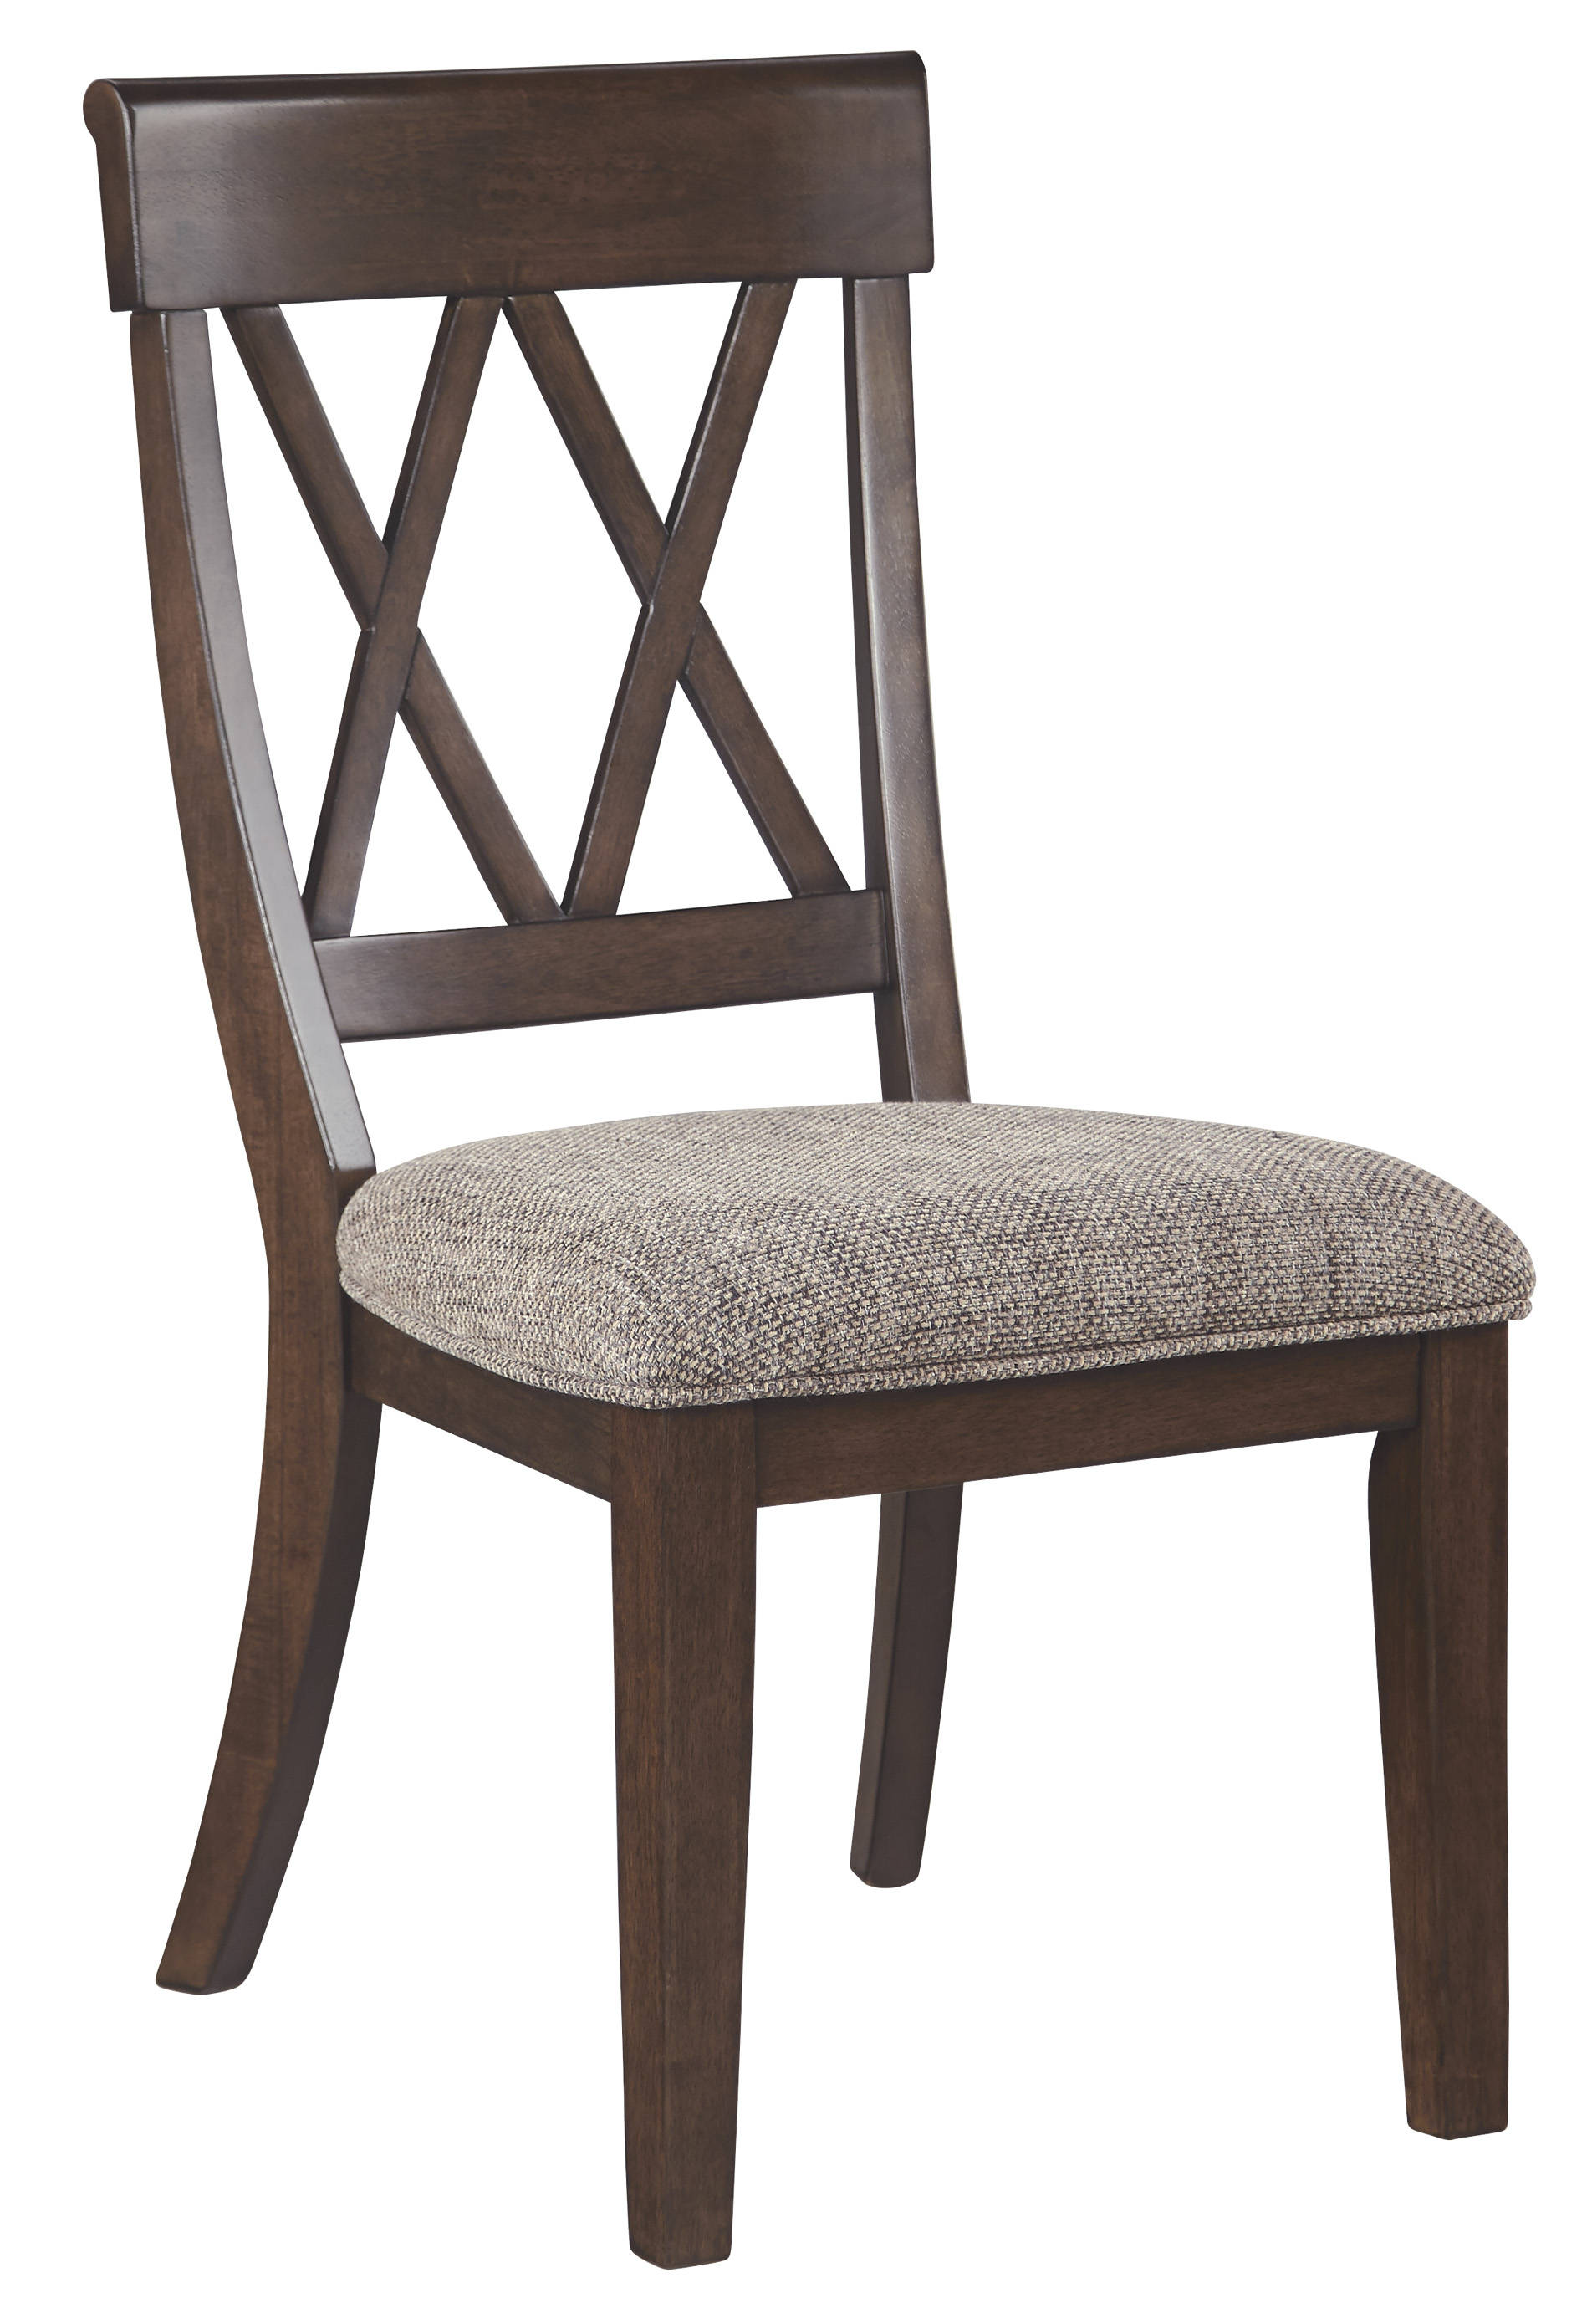 b9d53ae09b04 2 Ashley Furniture Brossling Dining Room Side Chairs